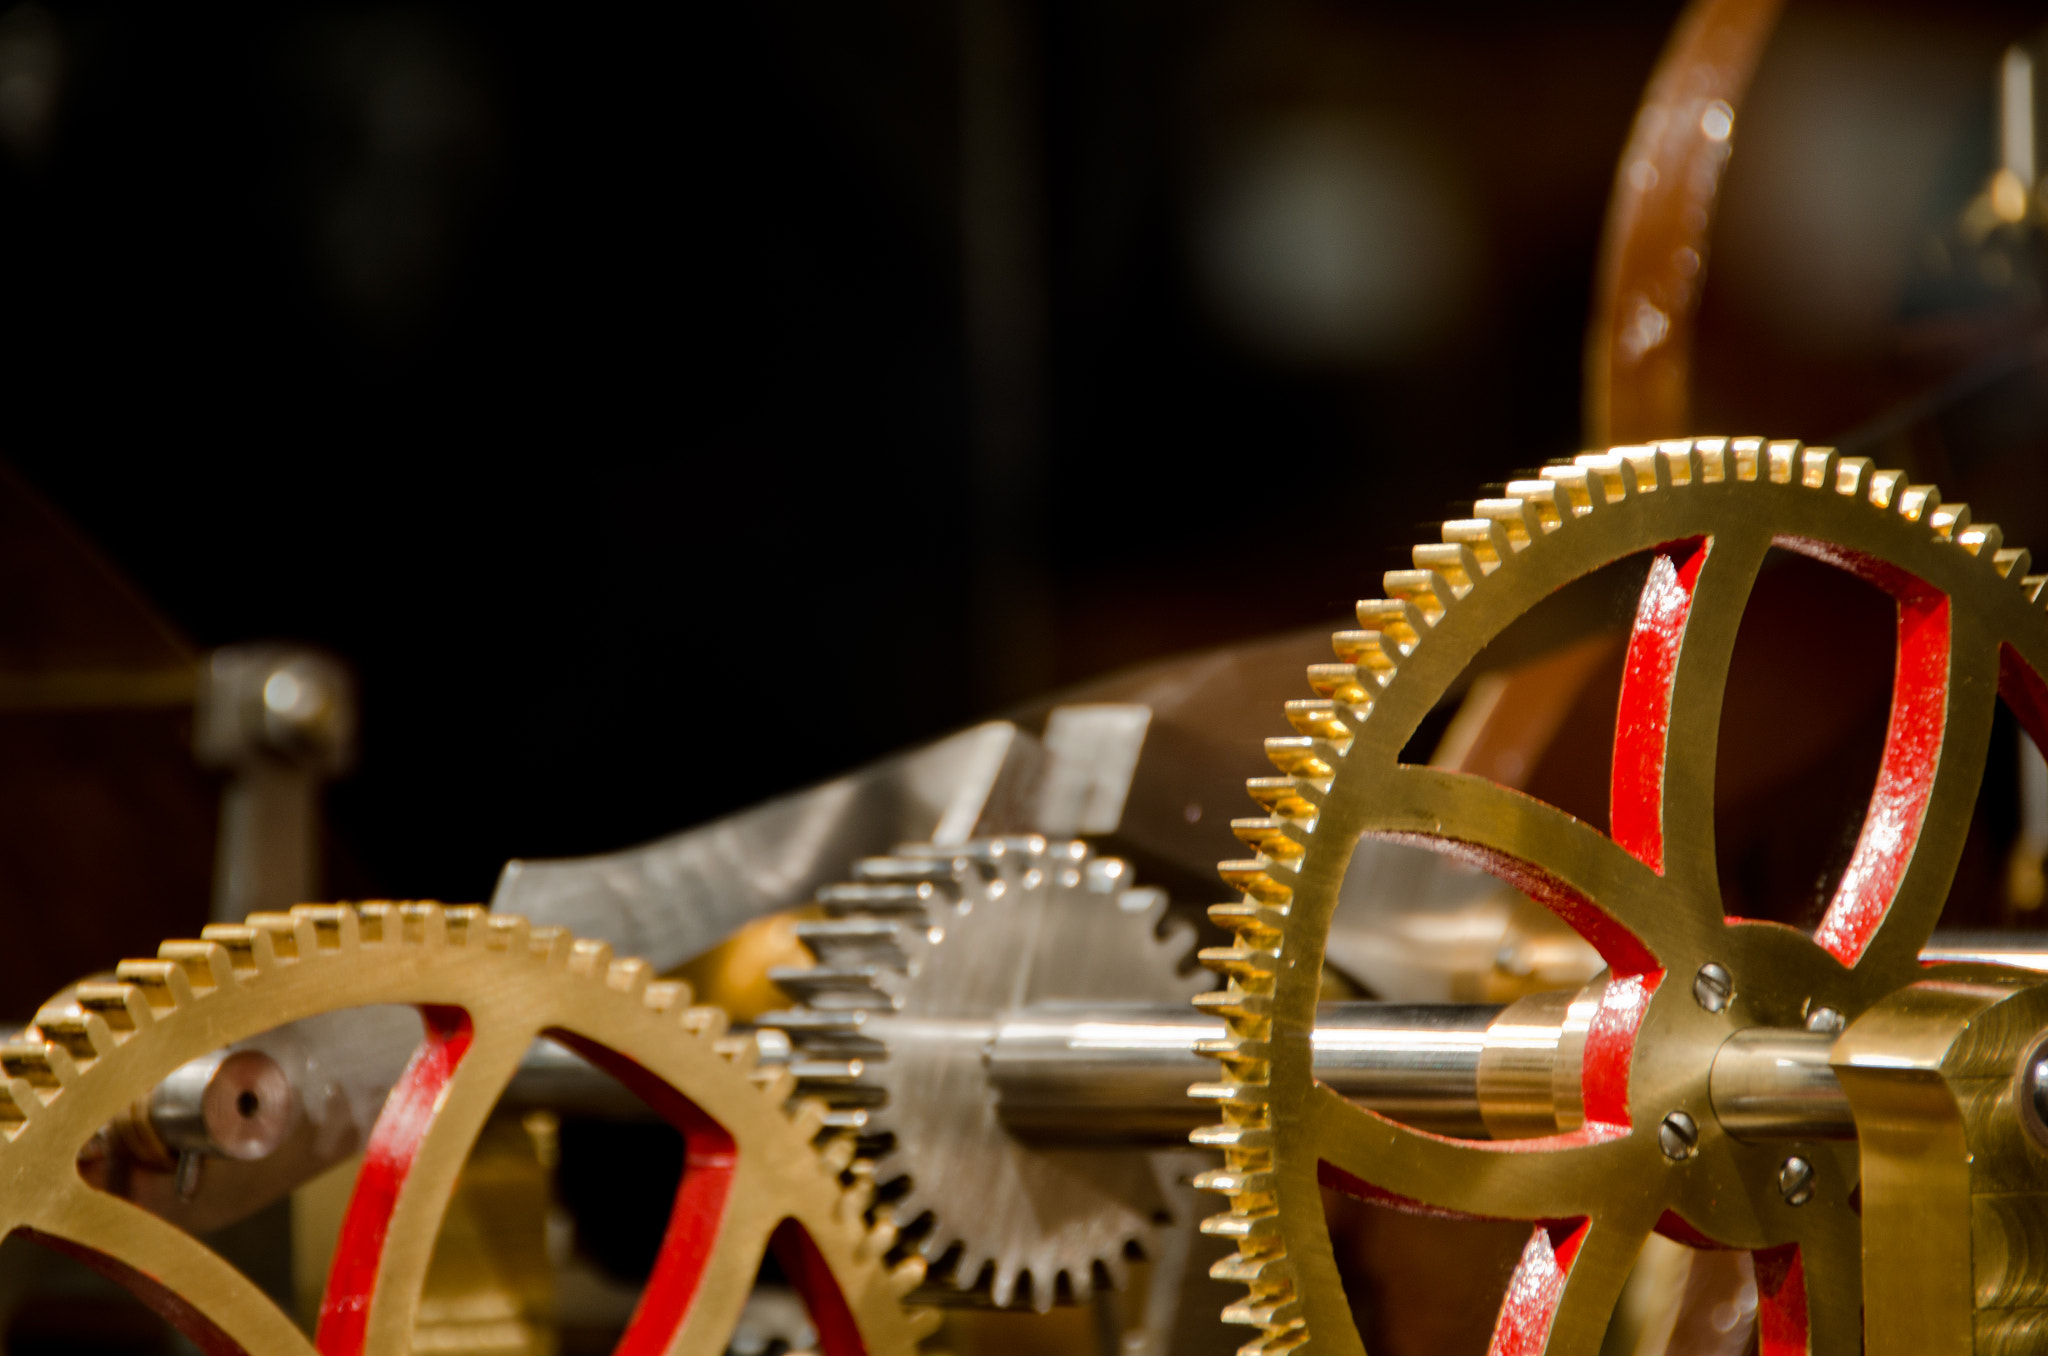 Photograph cogs & gears by LaDonna Pride on 500px